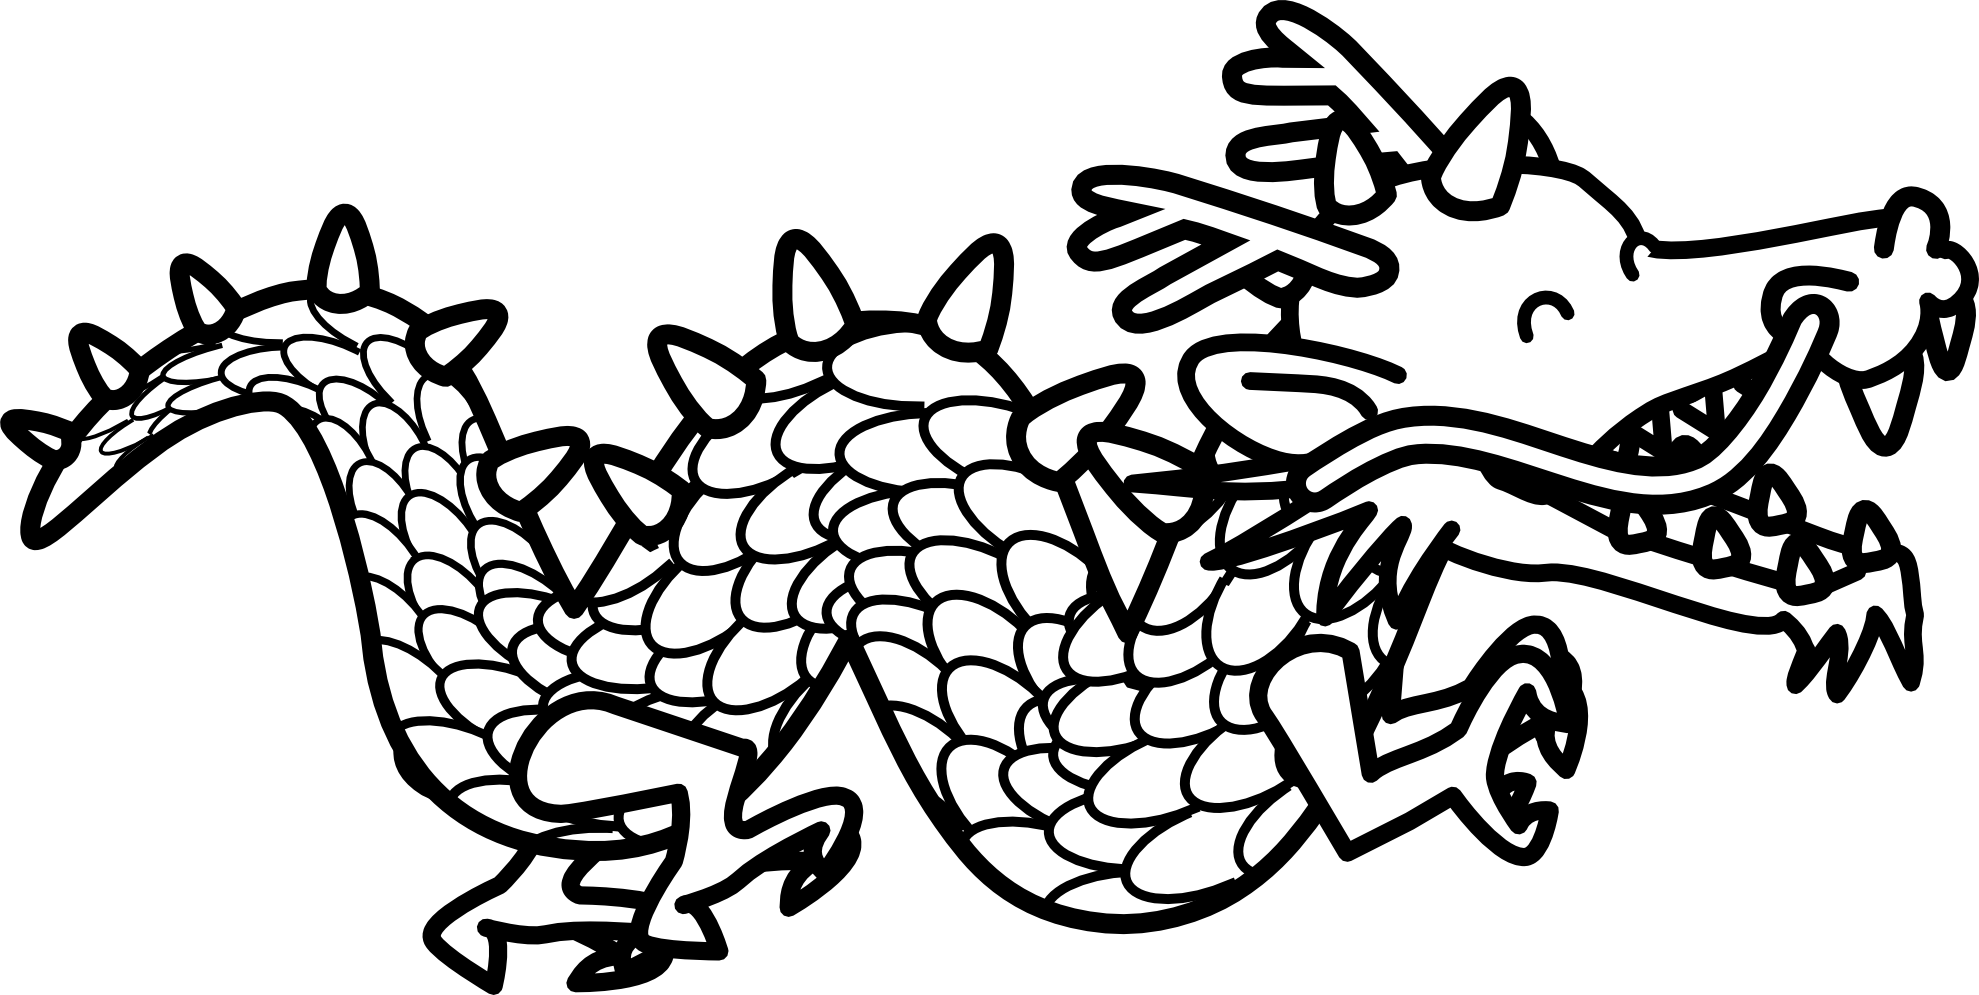 Dragon clipart black and white » Clipart Station.